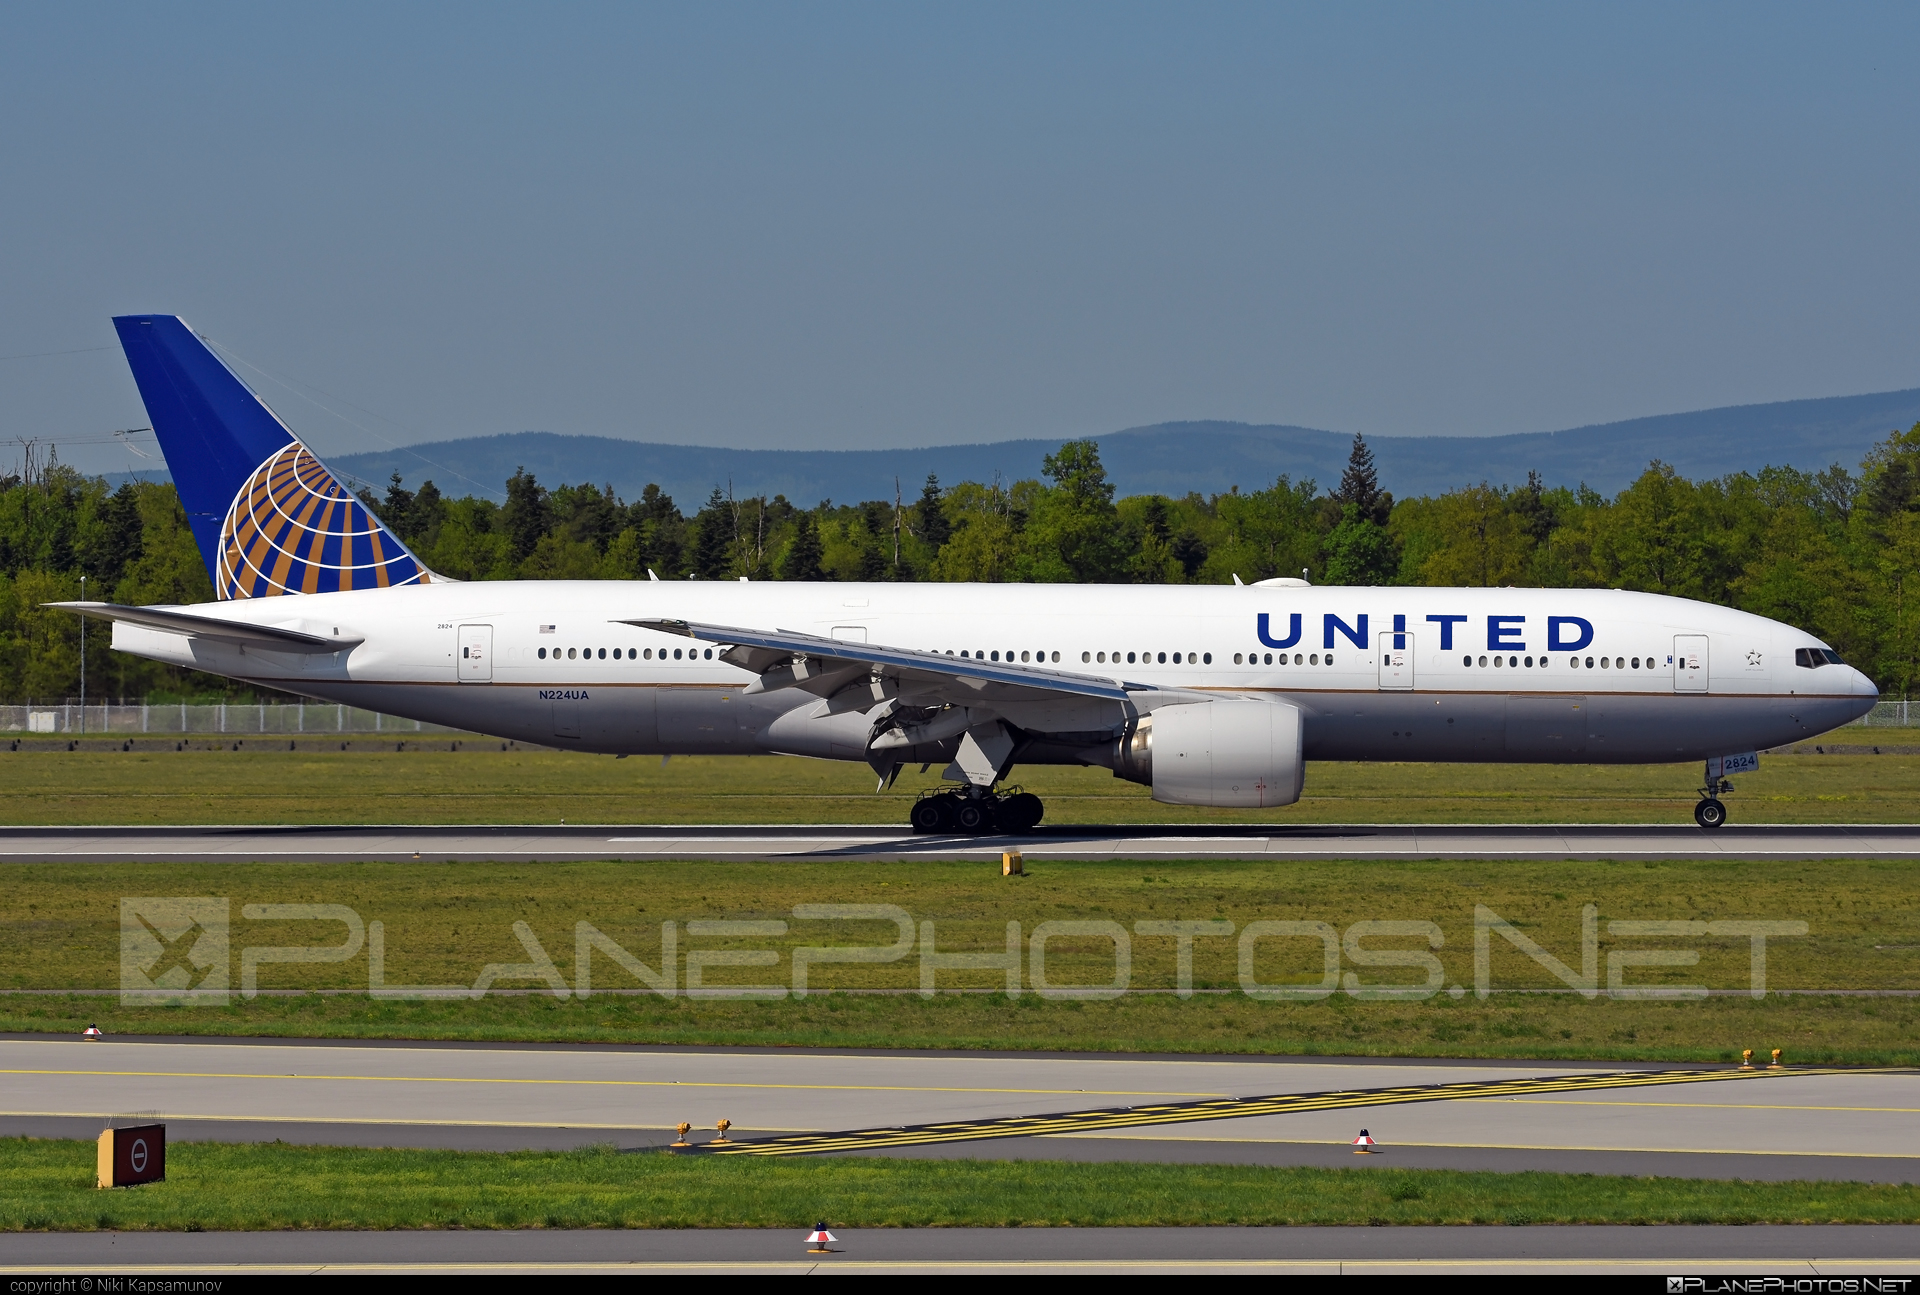 Boeing 777-200ER - N224UA operated by United Airlines #b777 #b777er #boeing #boeing777 #tripleseven #unitedairlines